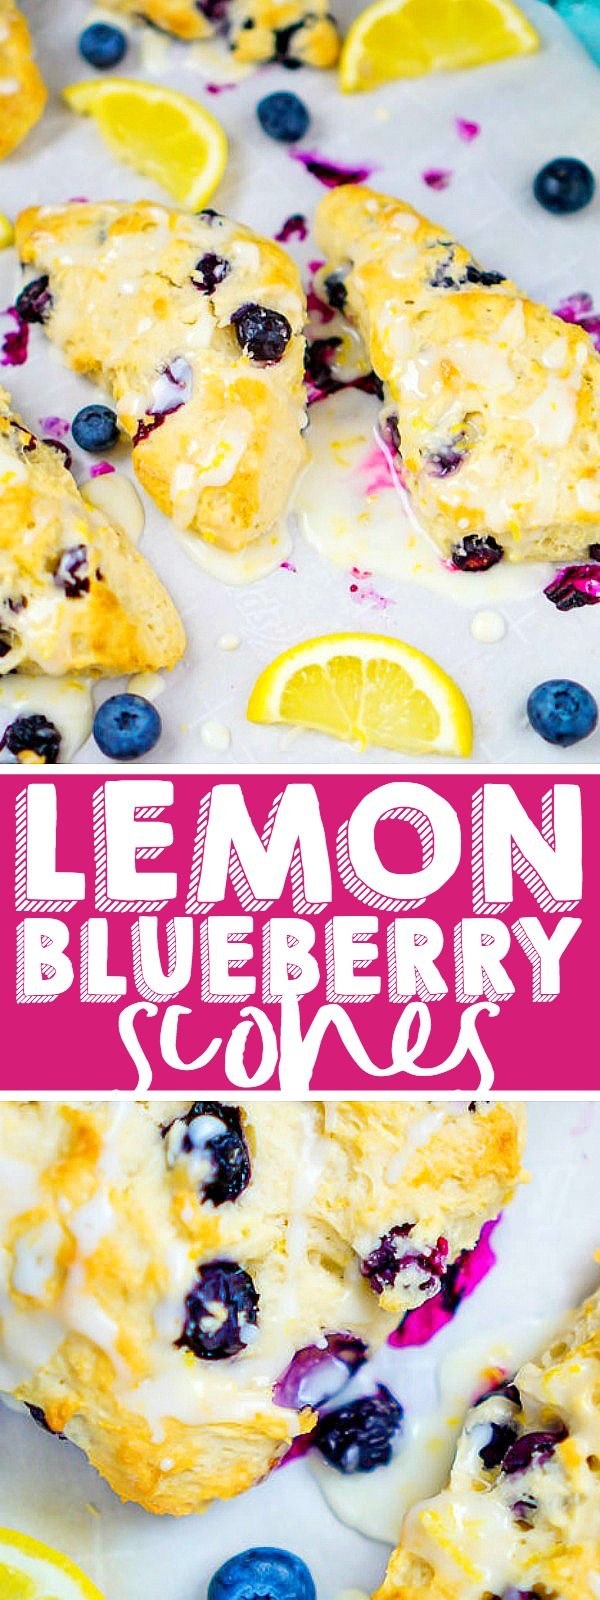 Glazed Lemon Blueberry Scones Recipe: Bake your way to a great holiday brunch with the BEST SCONE RECIPE! This delicious citrus scone makes the perfect breakfast pastry all year long! | The Love Nerds #christmasrecipe #easterrecipe #mothersdayrecipe